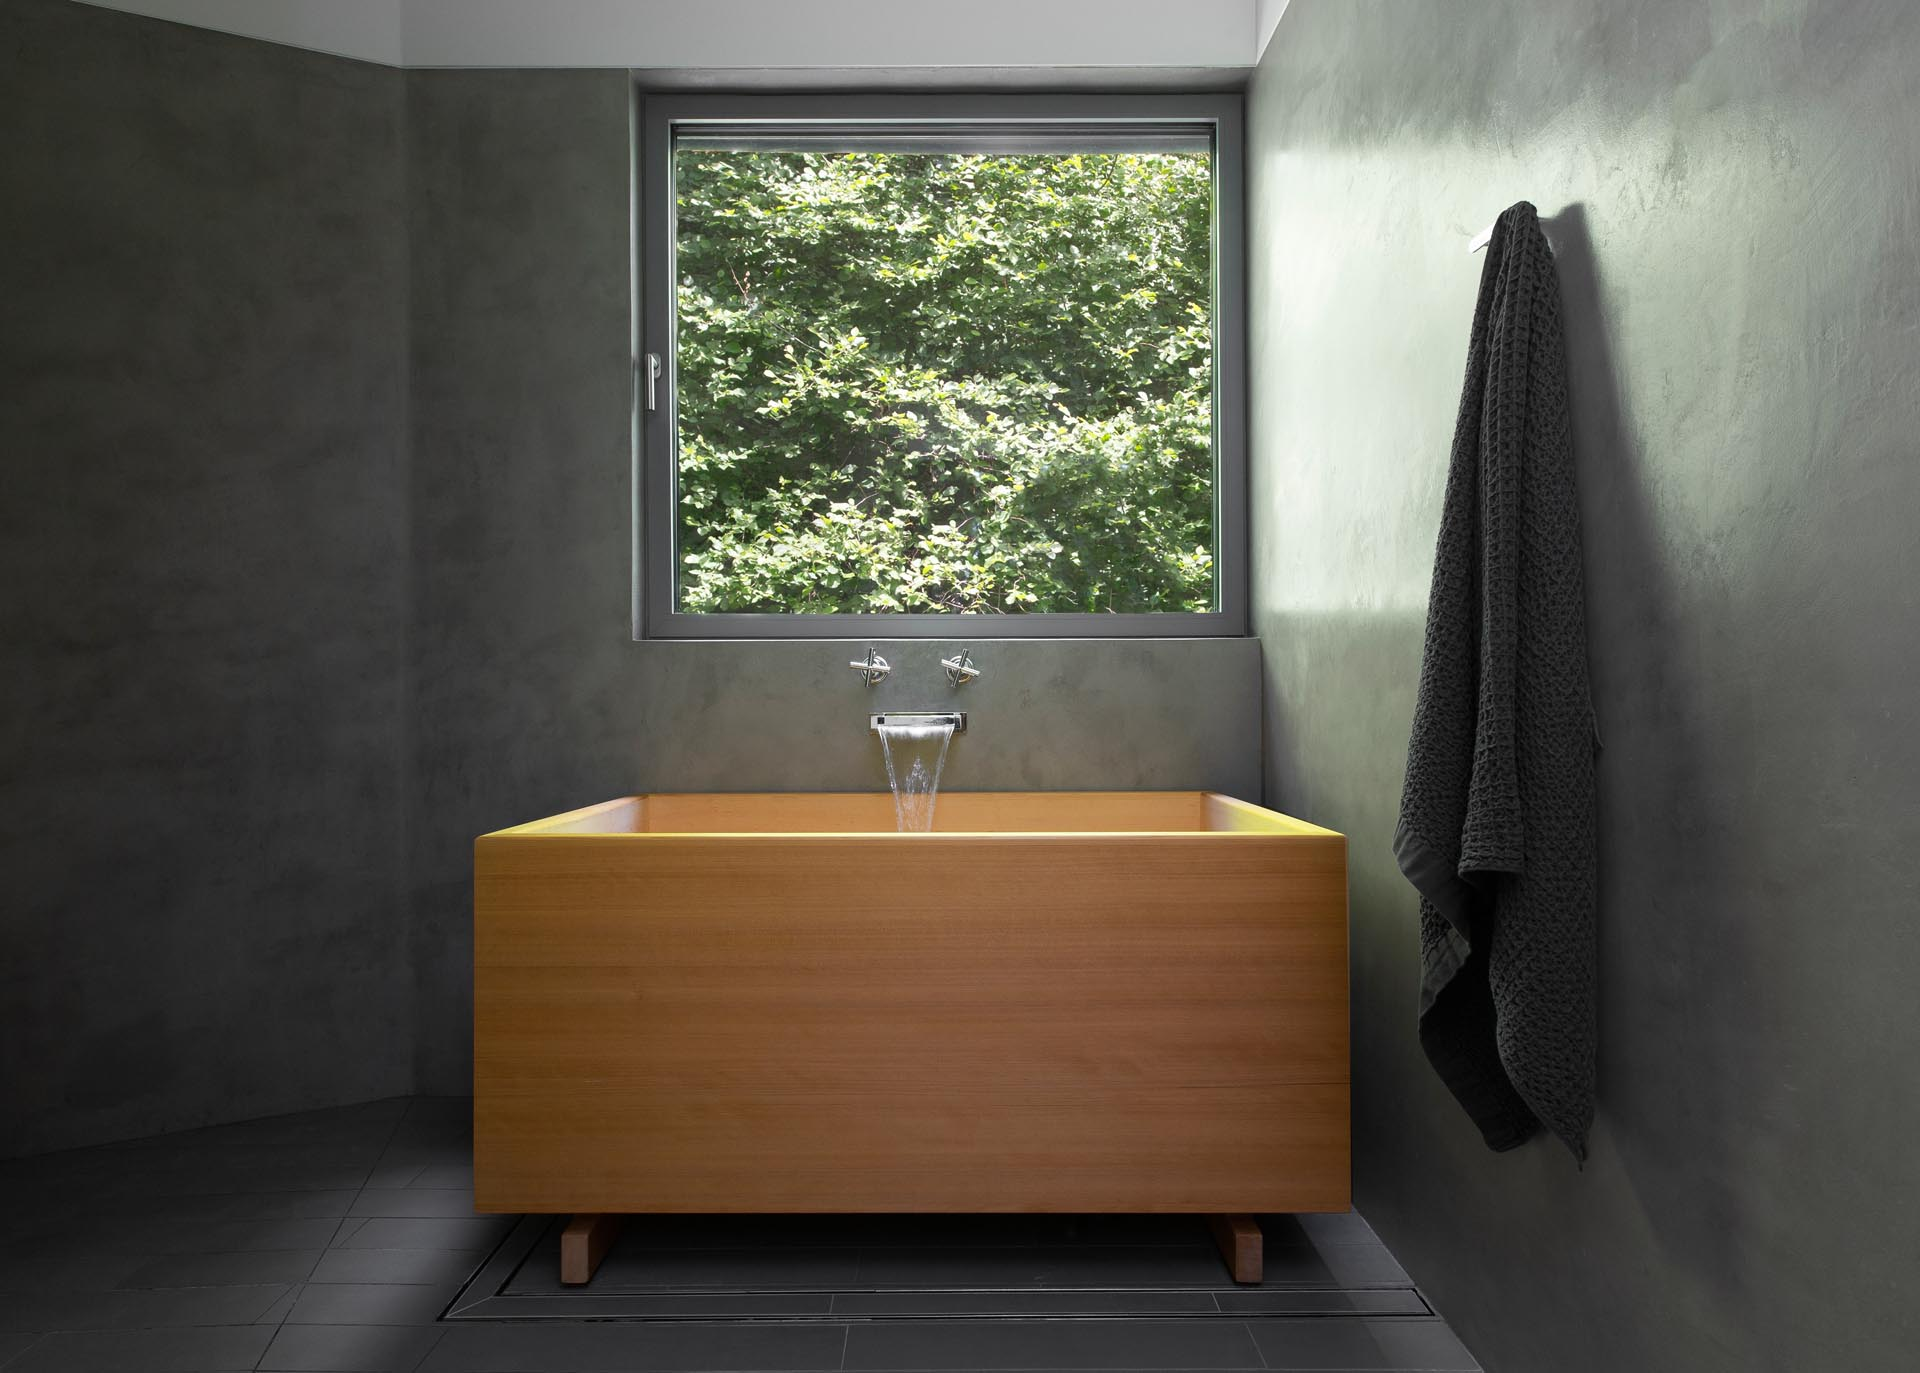 A modern bathroom with dark gray walls and a wood Japanese soaking tub.